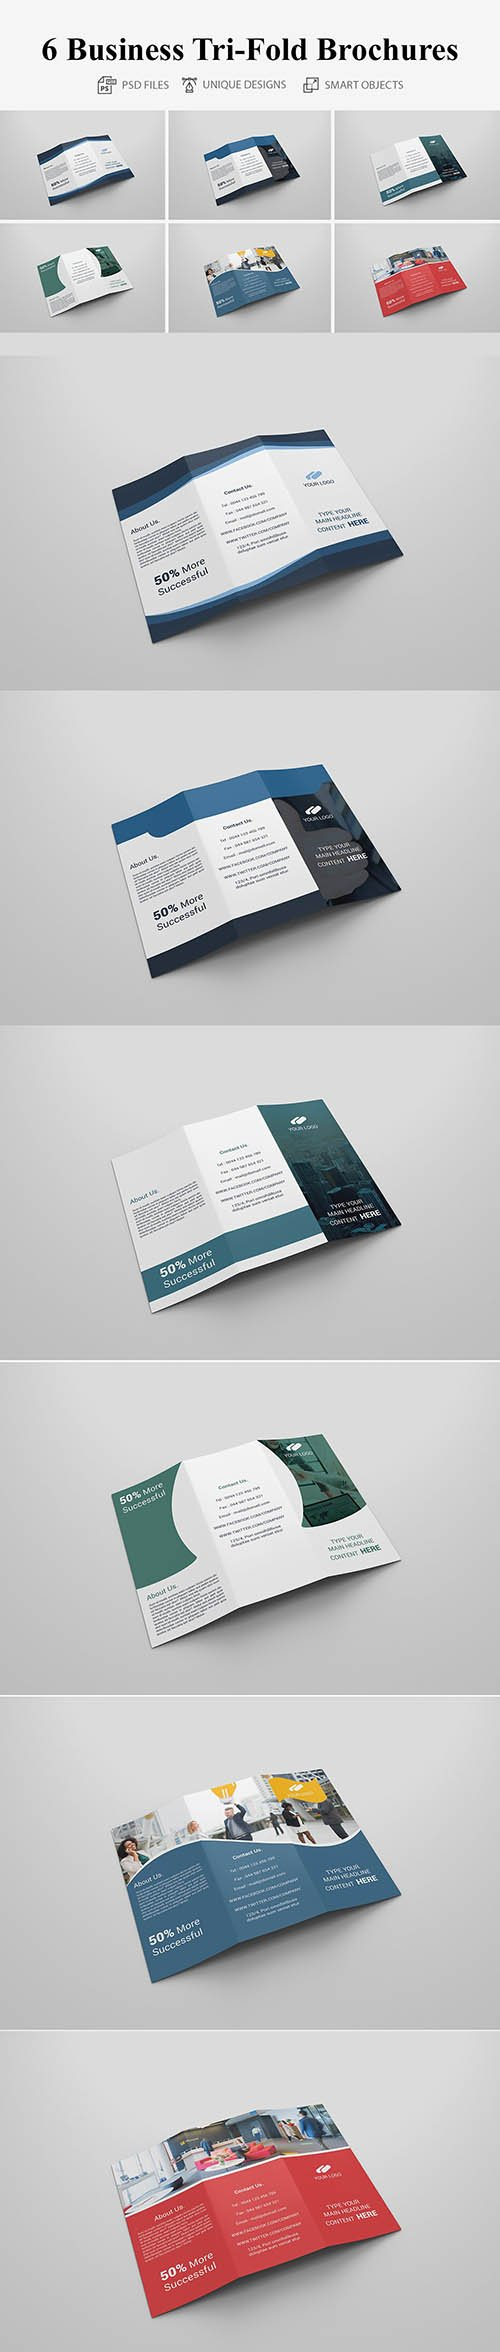 6 Business Tri-fold Brochures